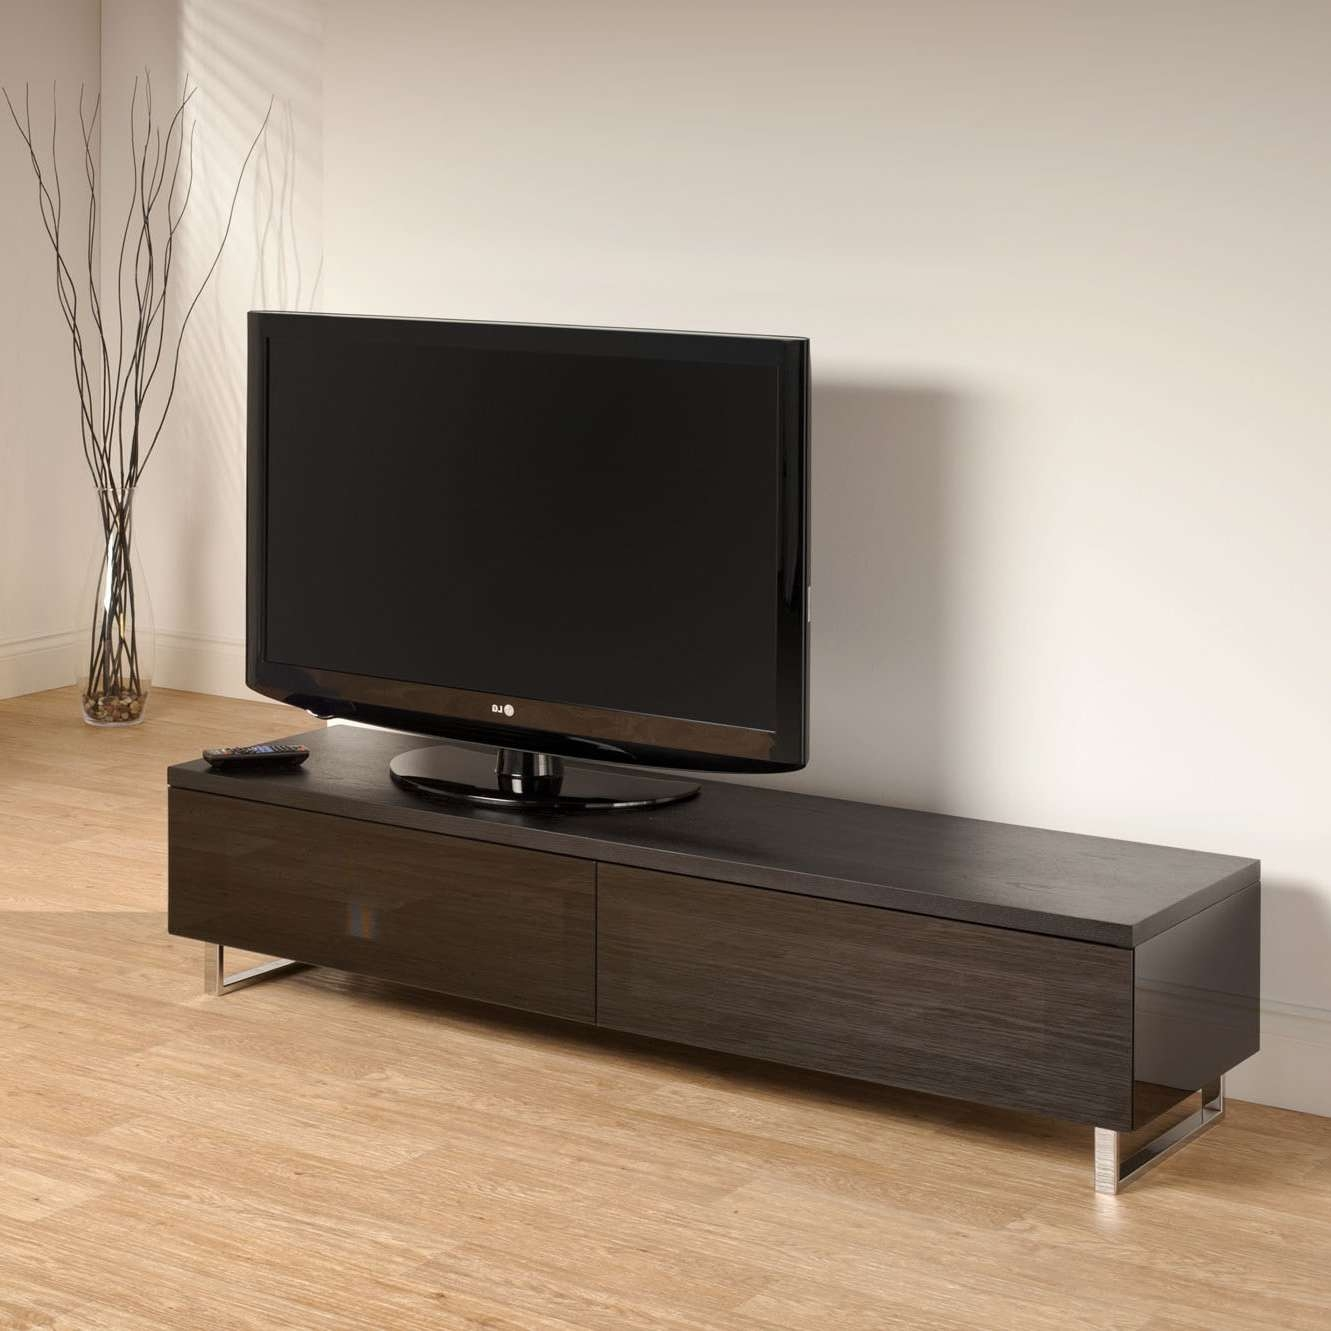 Good Modern Low Profile Tv Stand 24 With Additional Interior For Modern Low Profile Tv Stands (View 4 of 15)